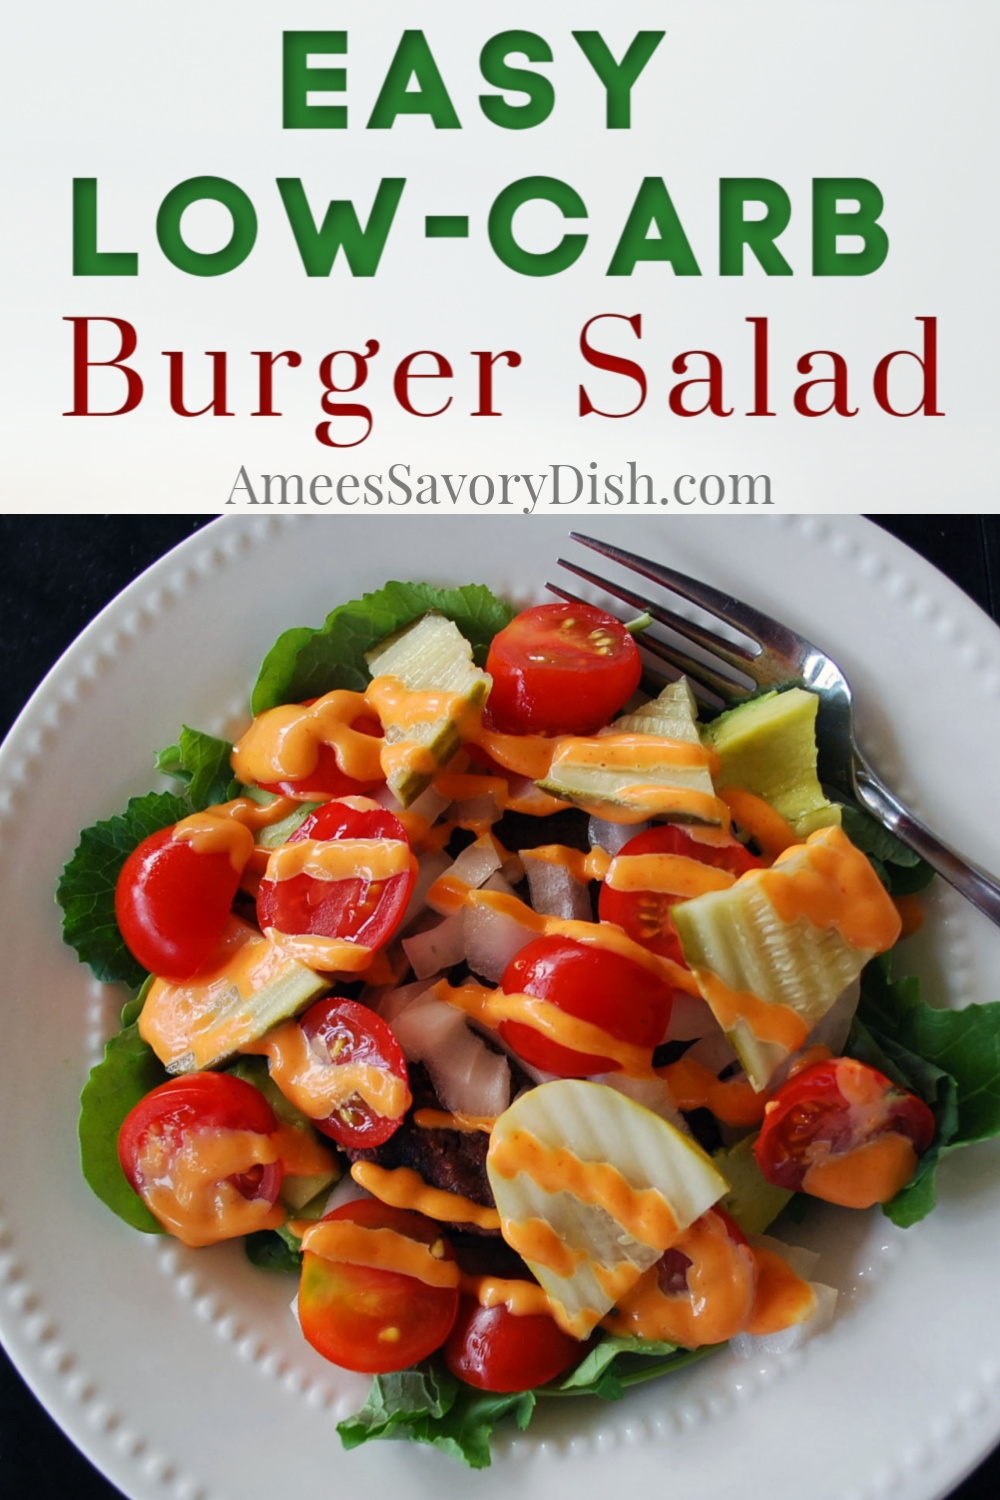 Burger salad is a low carb hamburger, served in a bowl!  I love deconstructed hamburgers.  You get all the delicious burger flavors, without the bun. With mixed greens and kale for super green micronutrients and Sriracha mayo for incredible flavor, this tasty dinner salad recipe makes a nutritious and simple meal! #burgersalad #salad #lowcarbsalad #saladrecipe #beef #lowcarbburgers via @Ameessavorydish